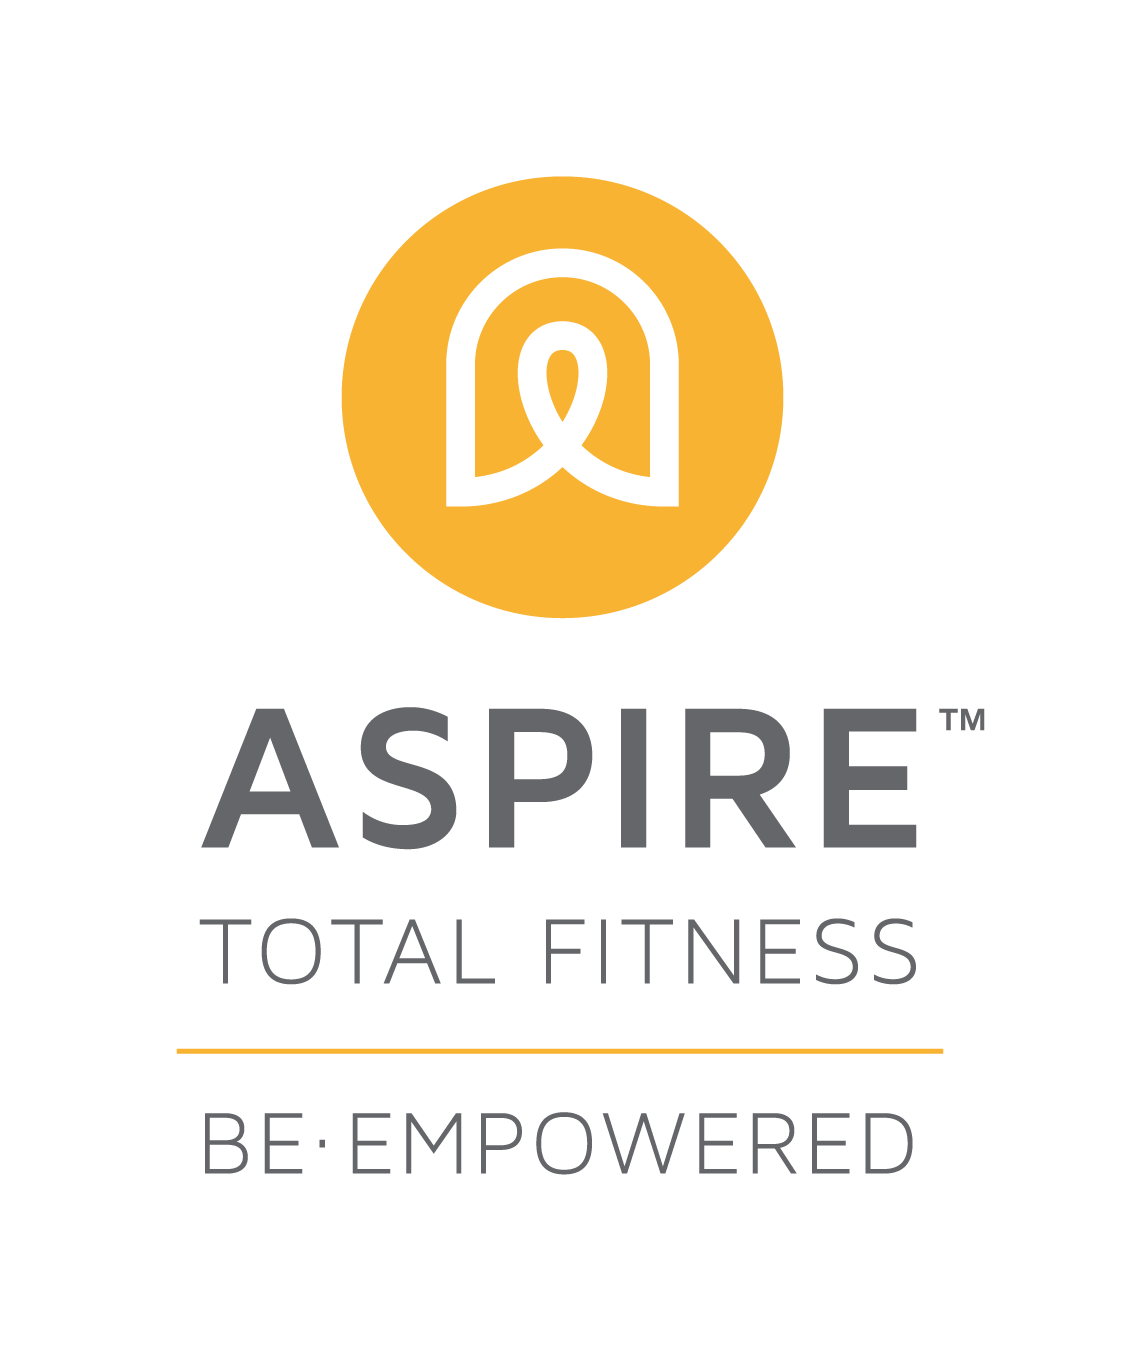 ASPIRE™ TOTAL FITNESS